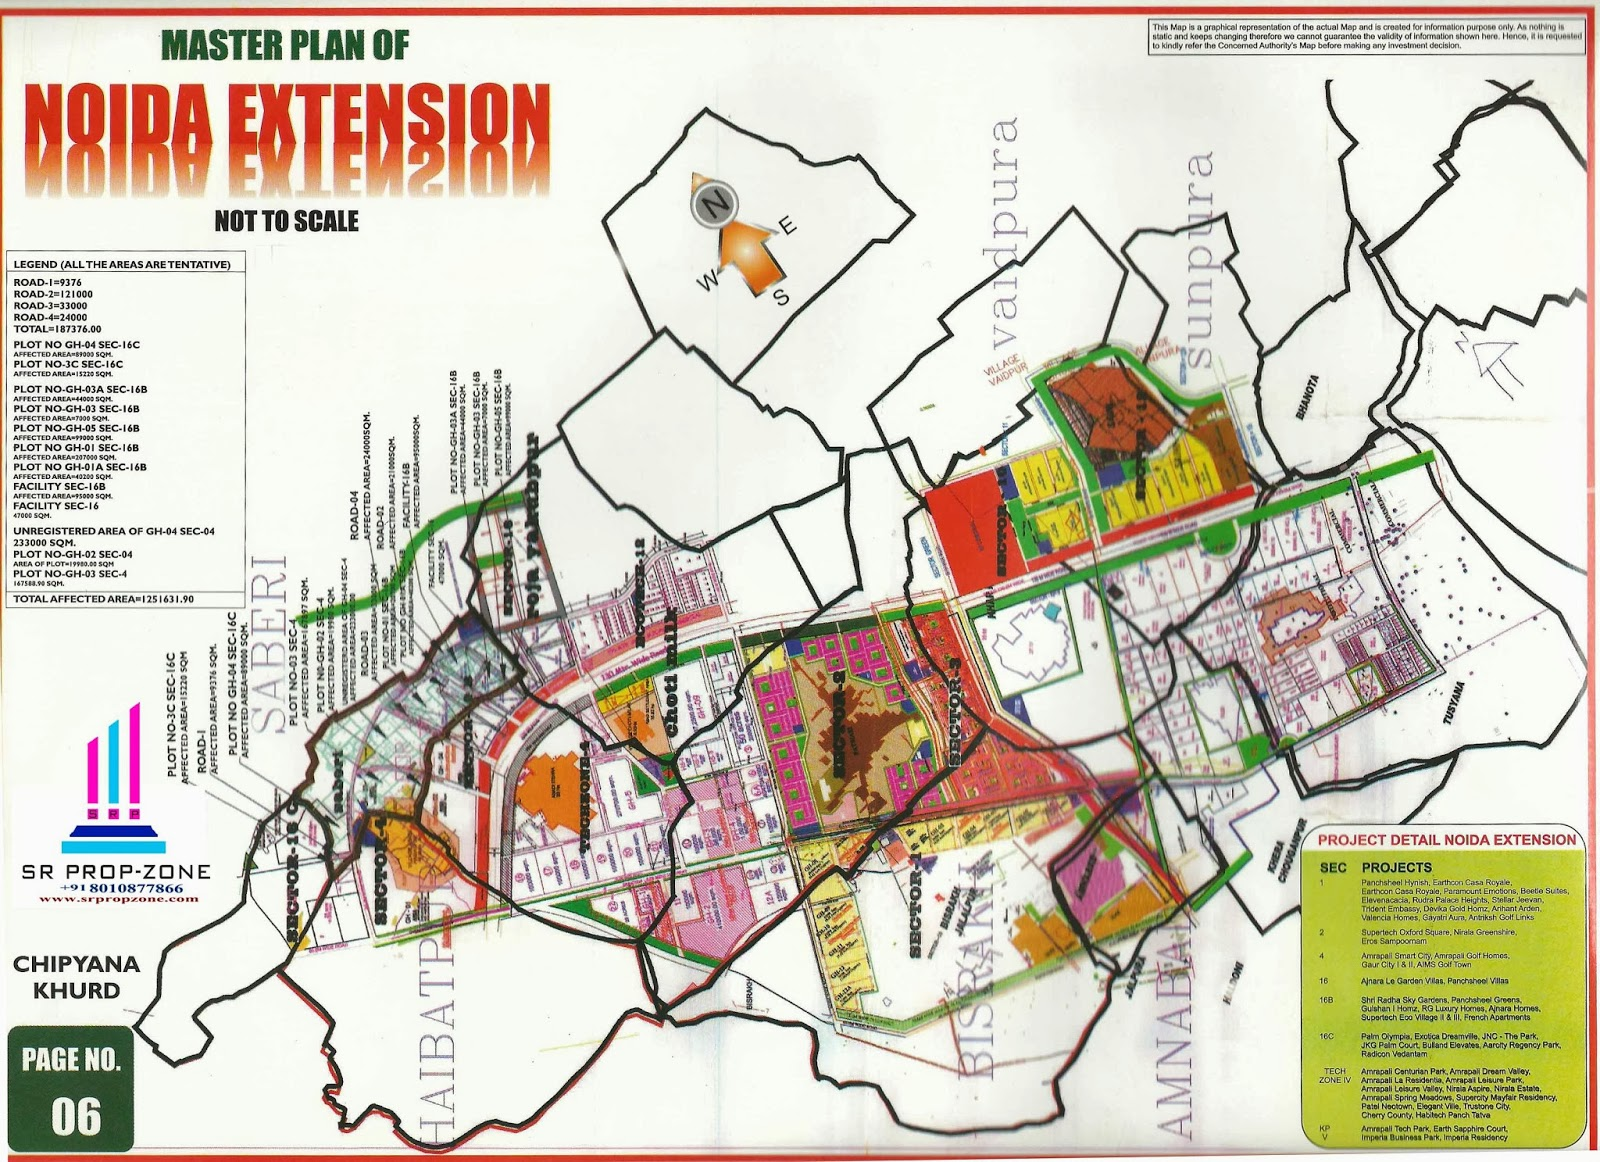 Noida Extension Map Master Plan of Noida Extension In HD Quility Map Greater Noida